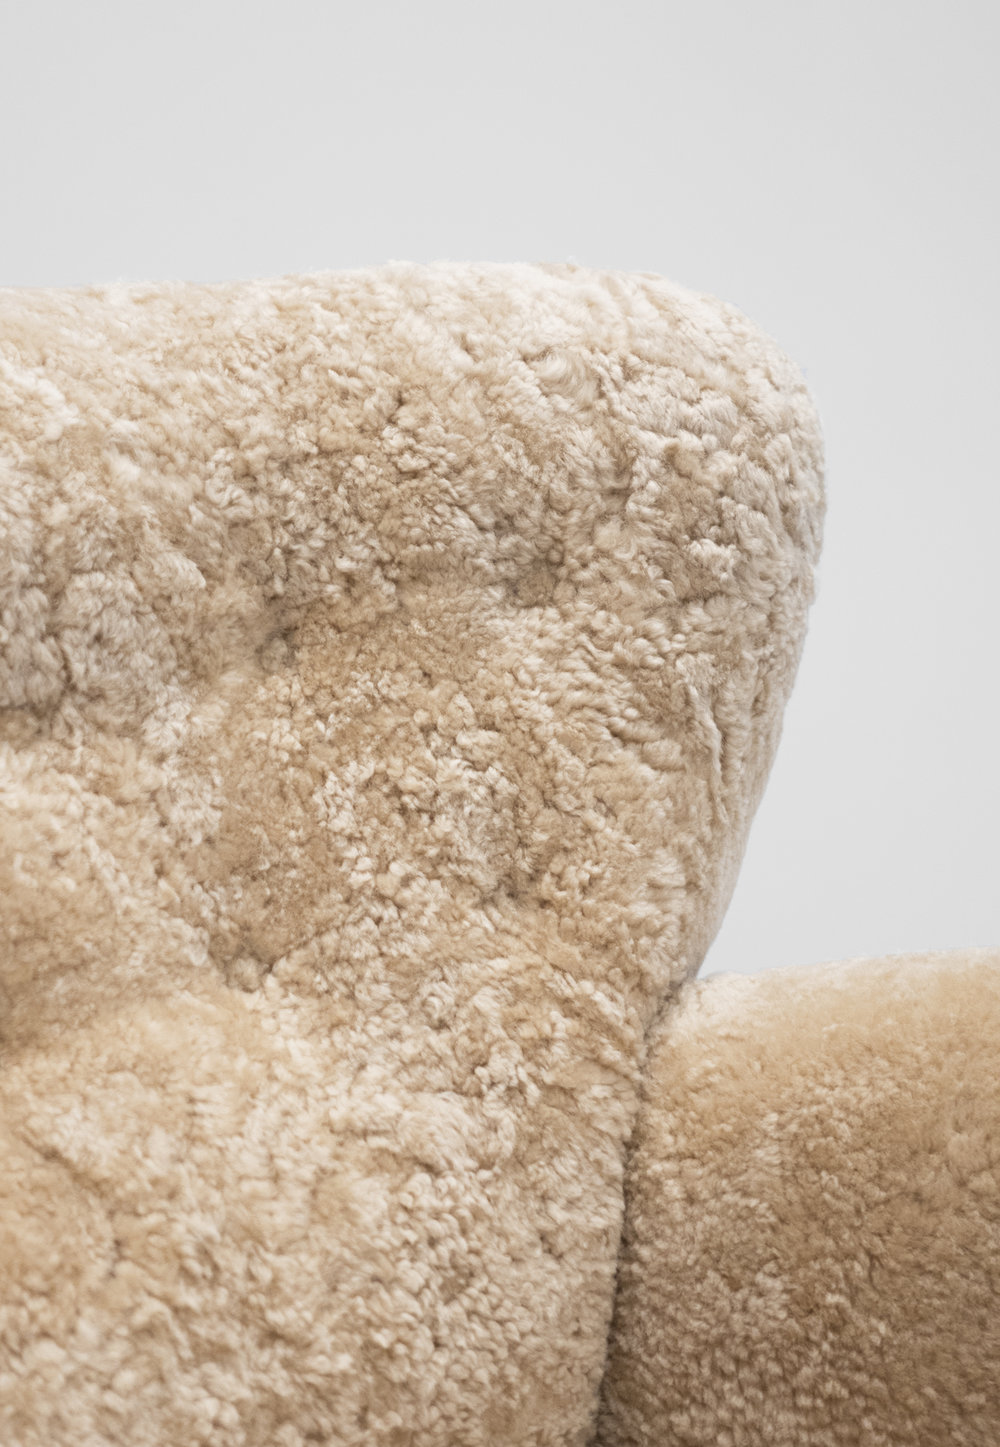 3. Mogens Lassen, attrib., Lounge Chair, c. 1940, sheepskin, stained oak, 40W x 39D x 36H inches.jpg